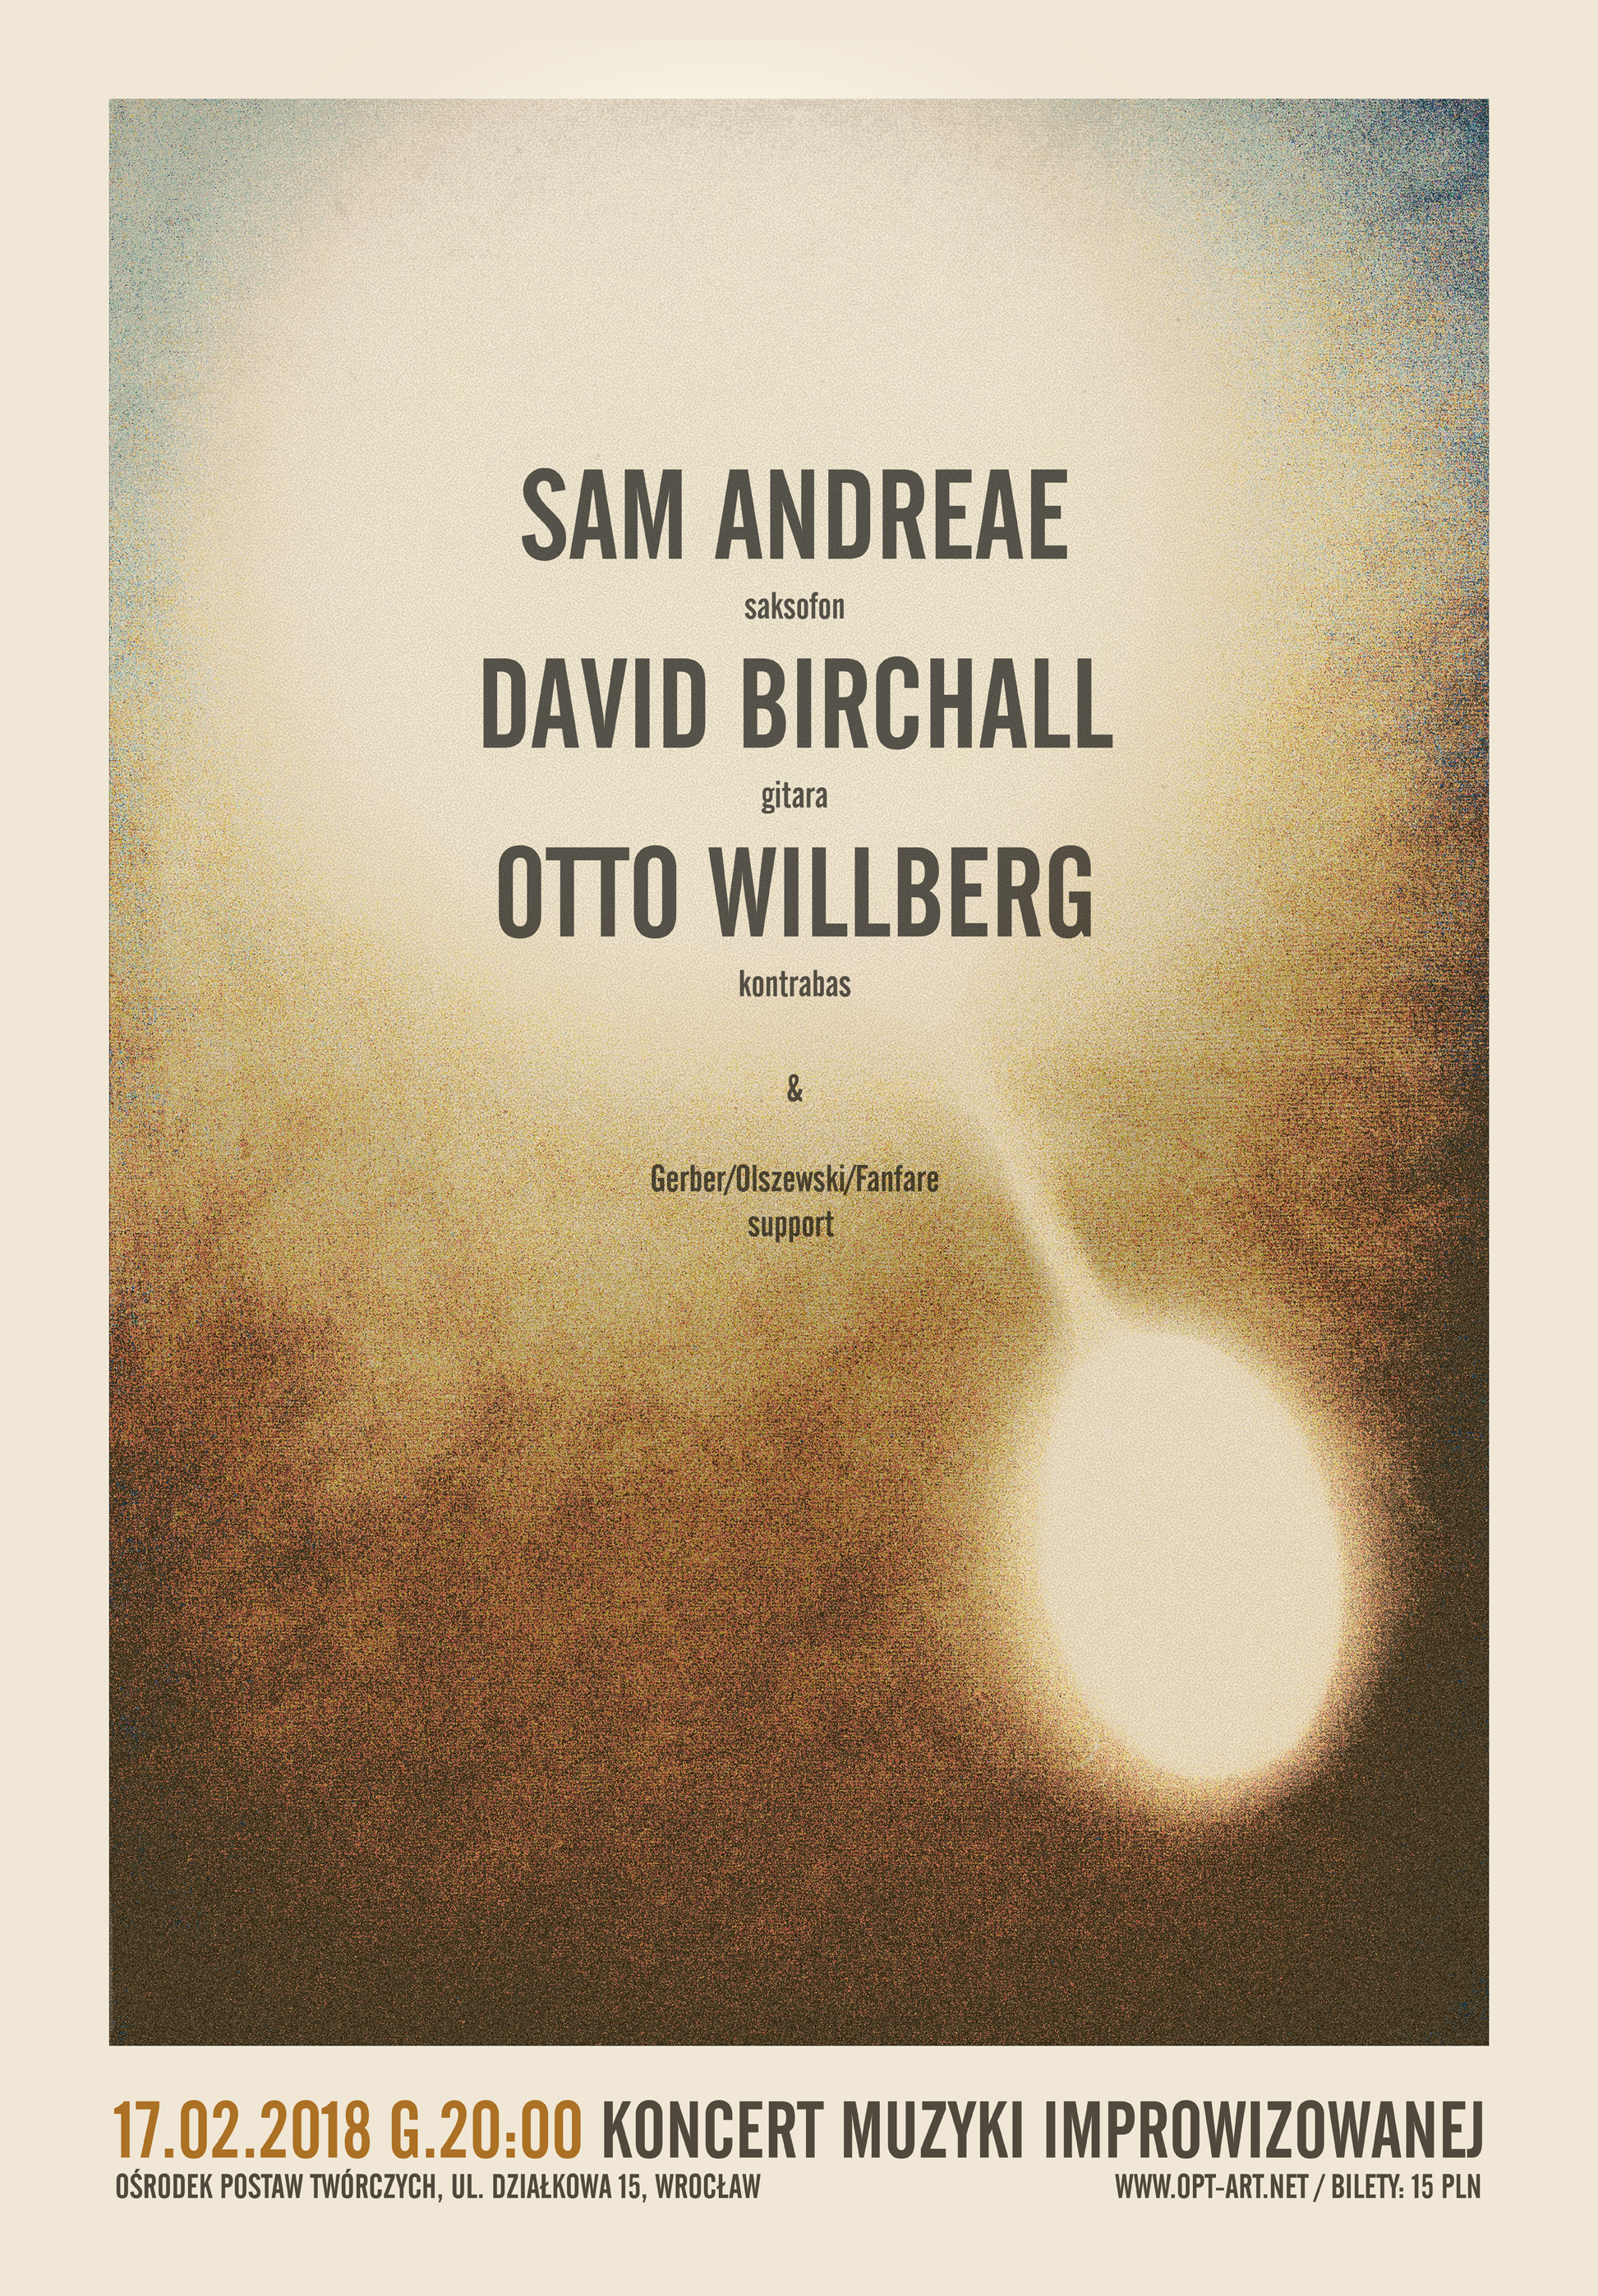 Sam Andreae / David Birchall / Otto Willberg